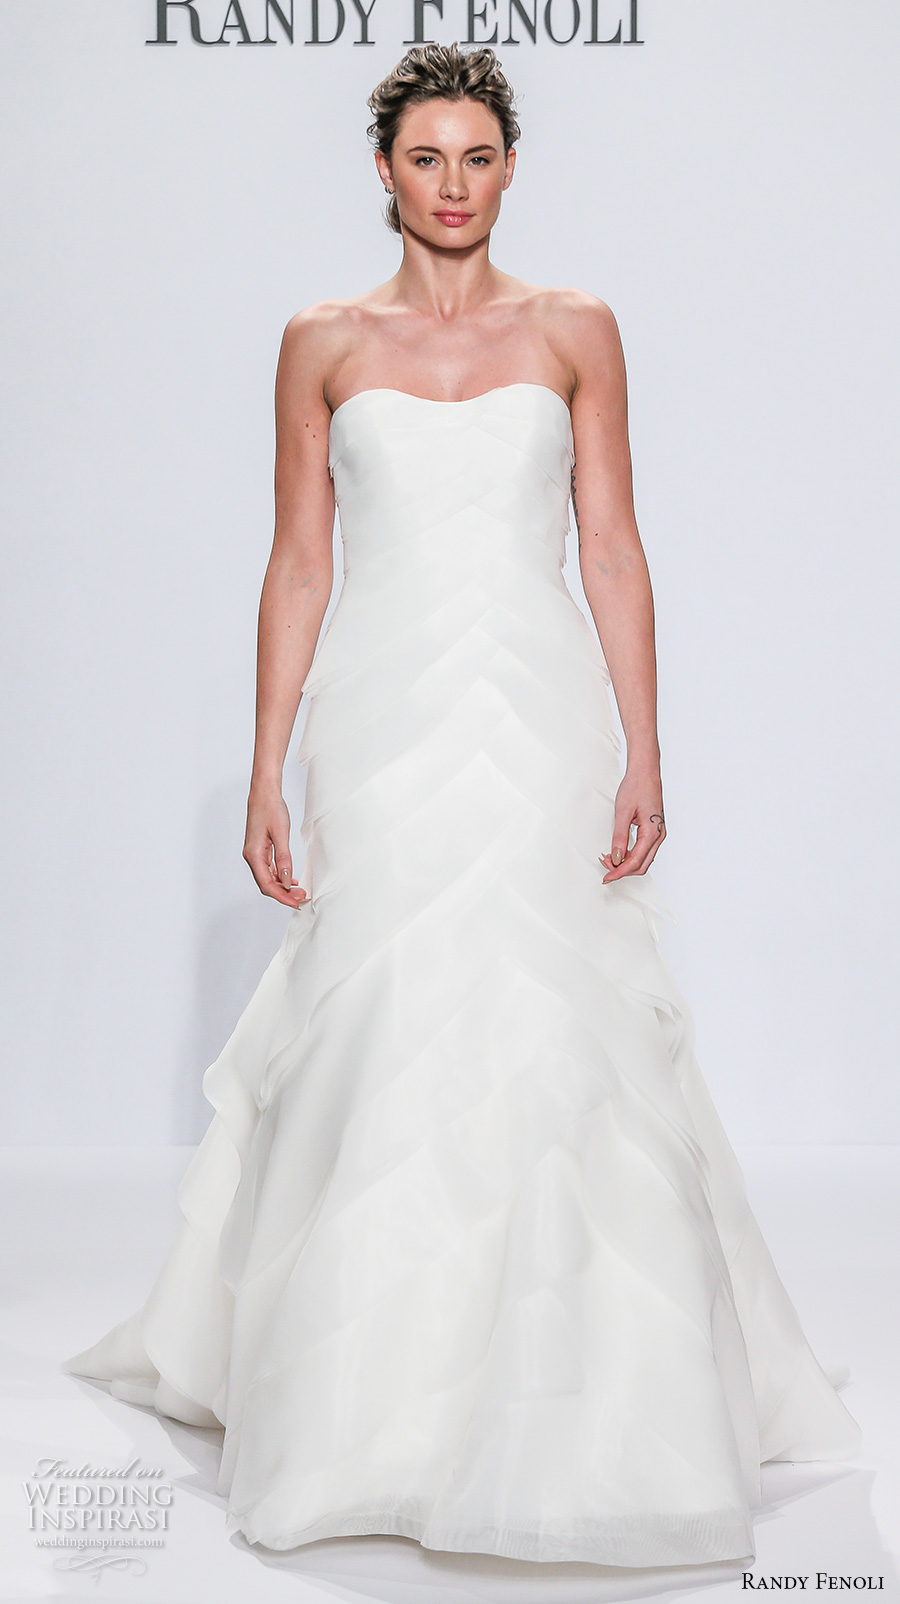 randy fenoli spring 2018 bridal semi sweetheart neckline simple elegant trumpet wedding dress chapel train (08) mv